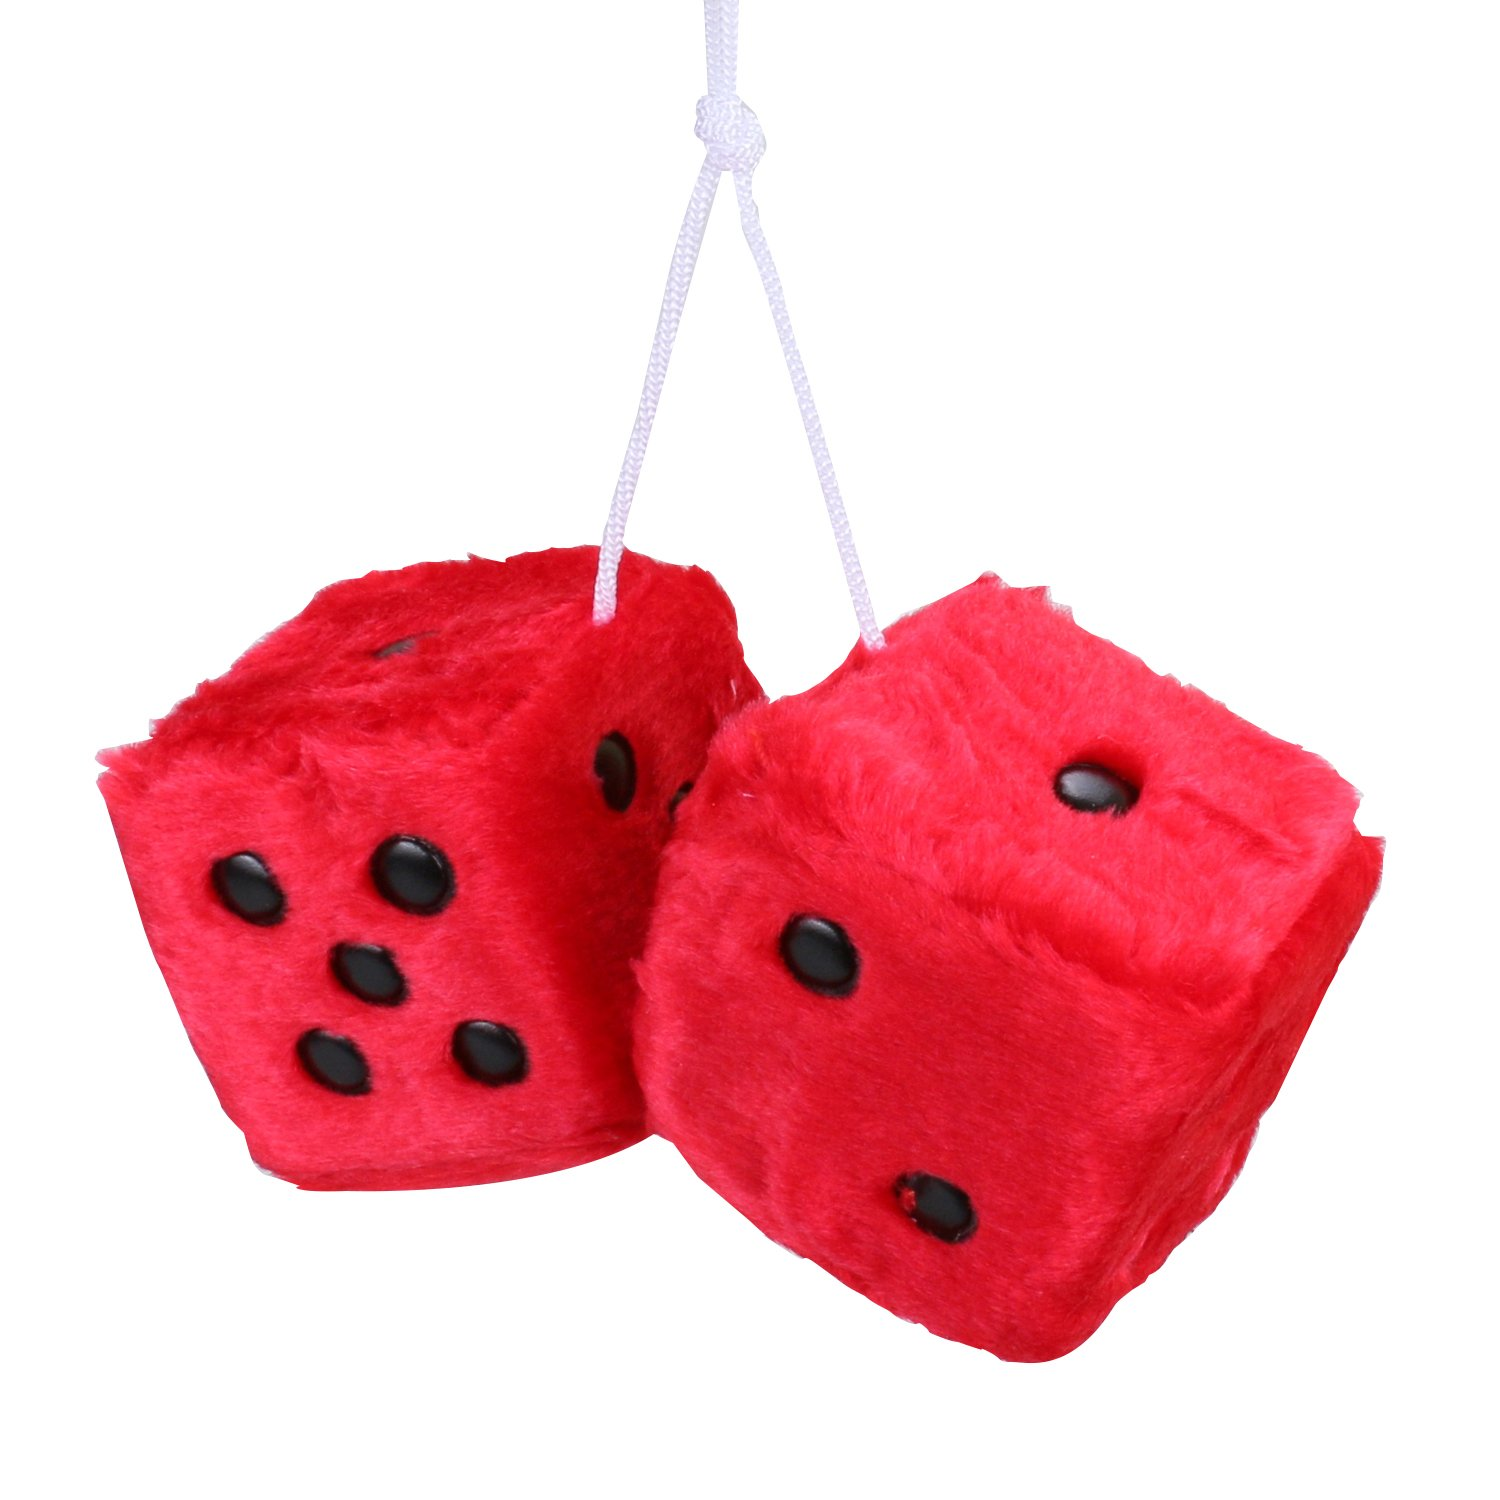 Car Fuzzy Dice,3 inch Pair of Retro Square Mirror Car Hanging Dice, Couple Fuzzy Dice with Dots For Car Interior Ornament Decoration (Black) OUERKEJI